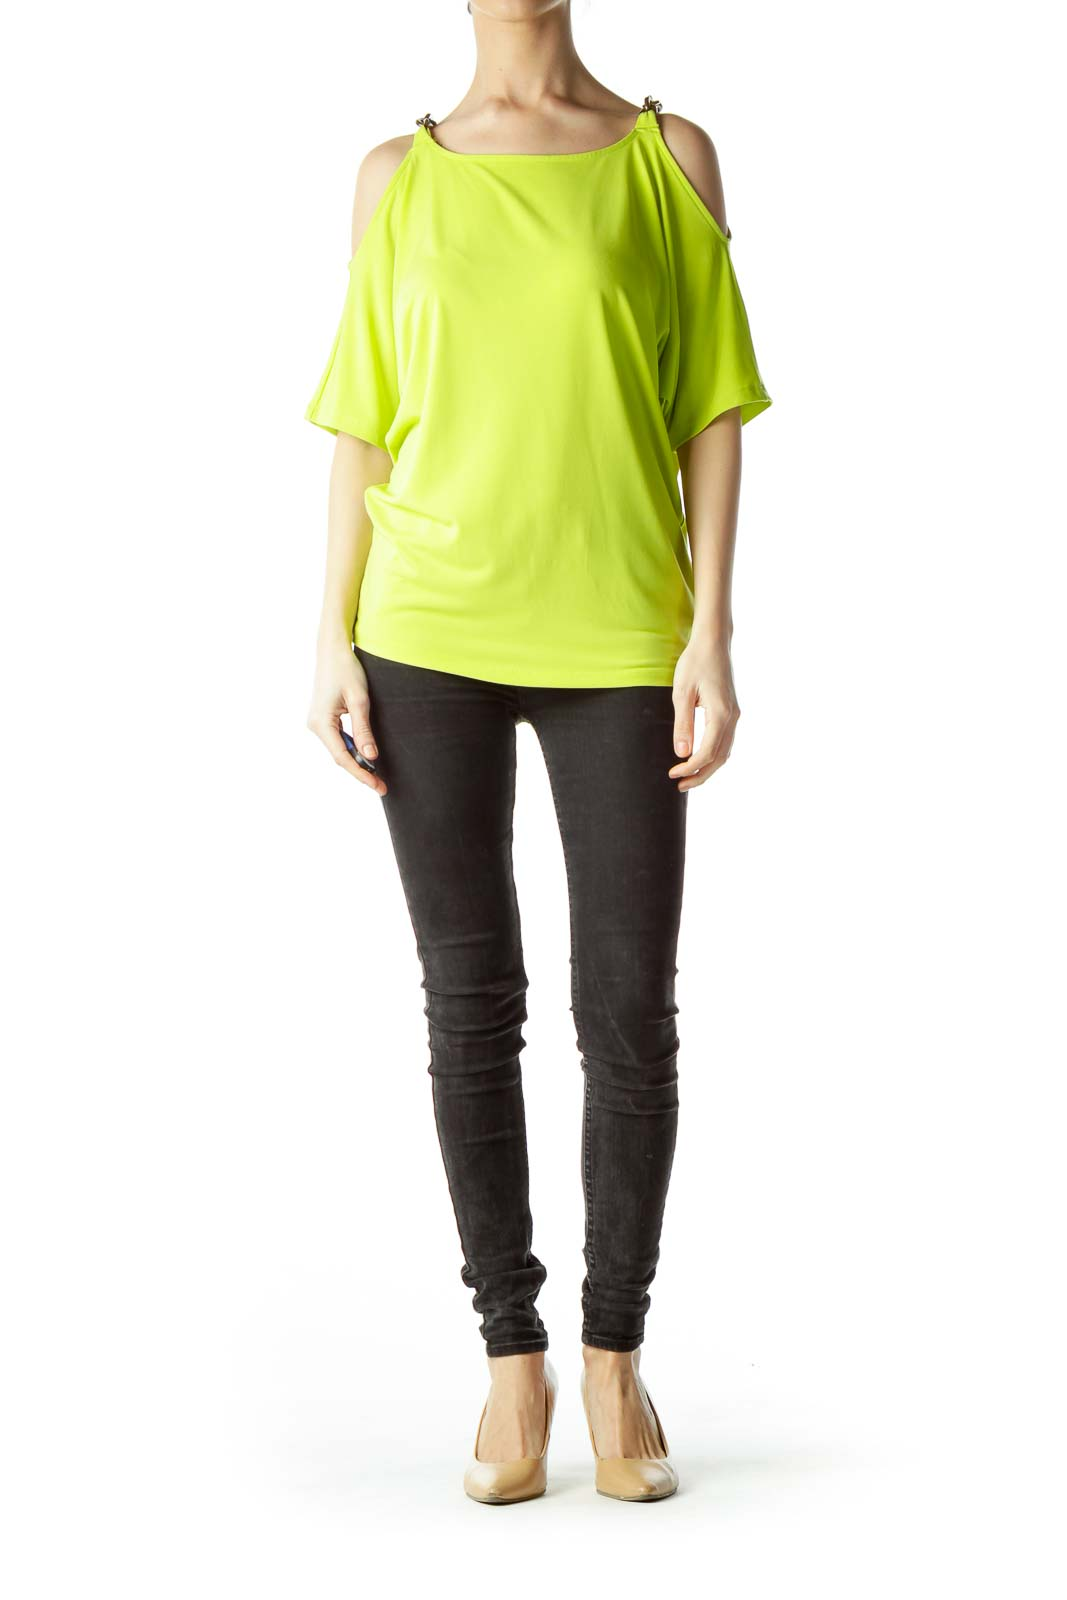 67e49fbe1ab439 Fluorescent Green Shoulder Chains Blouse Fluorescent Green Shoulder Chains  Blouse